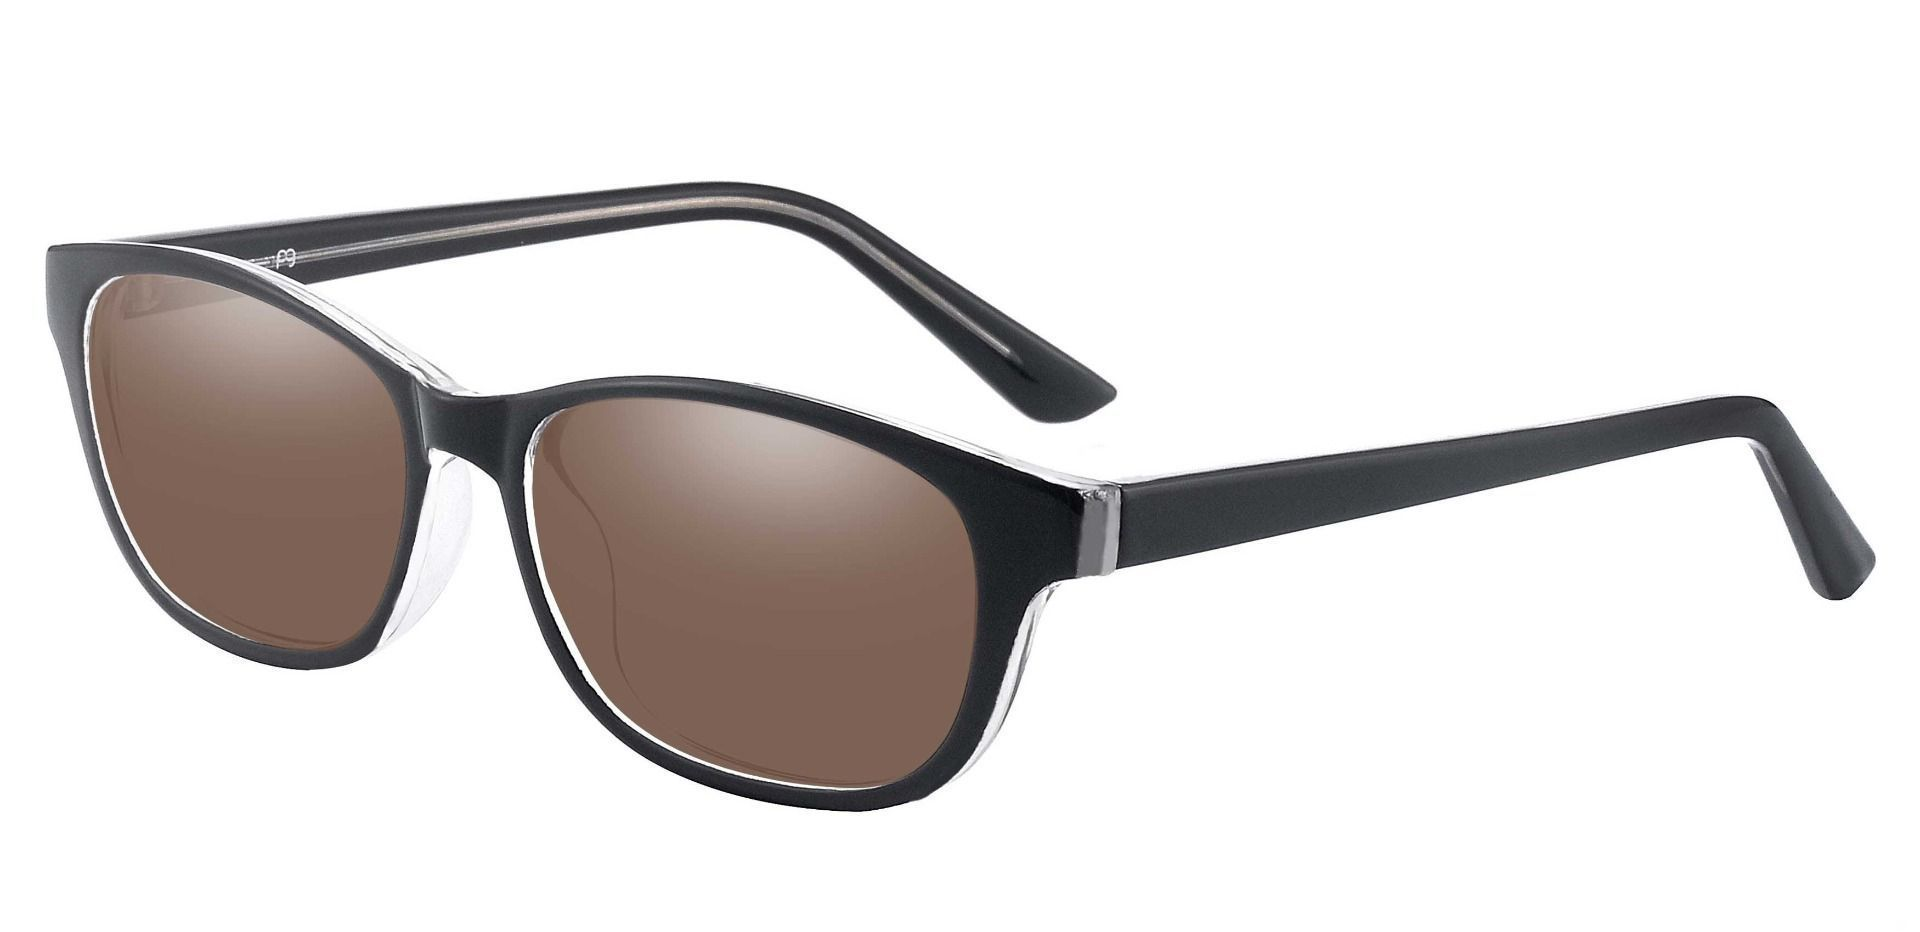 Reyna Classic Square Prescription Sunglasses - Black Frame With Brown Lenses